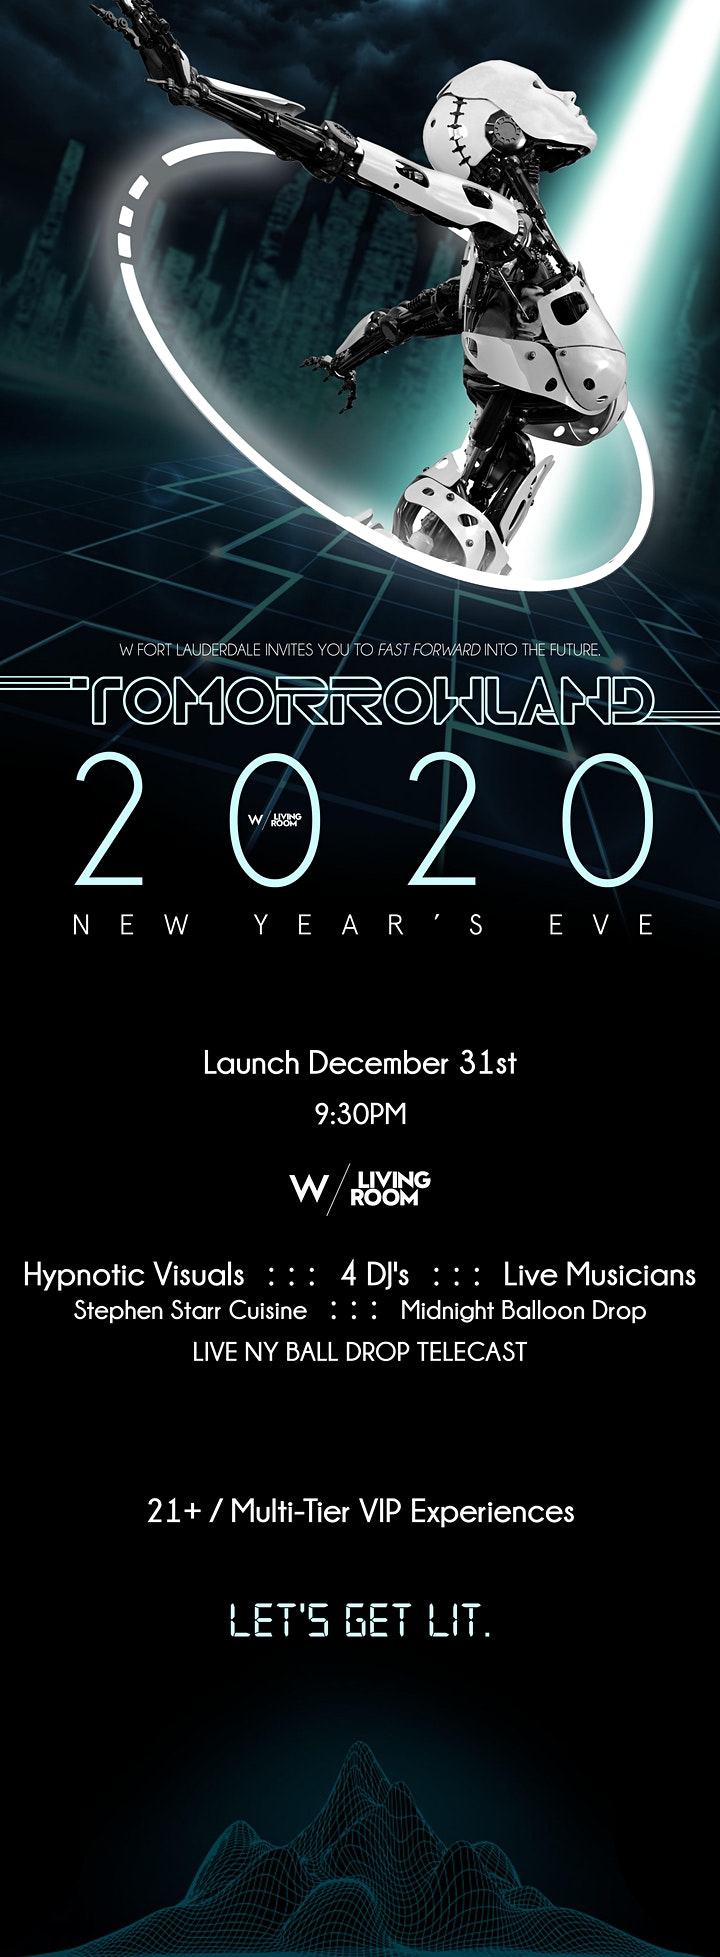 TOMORROWLAND NYE 2020 at W Fort Lauderdale image